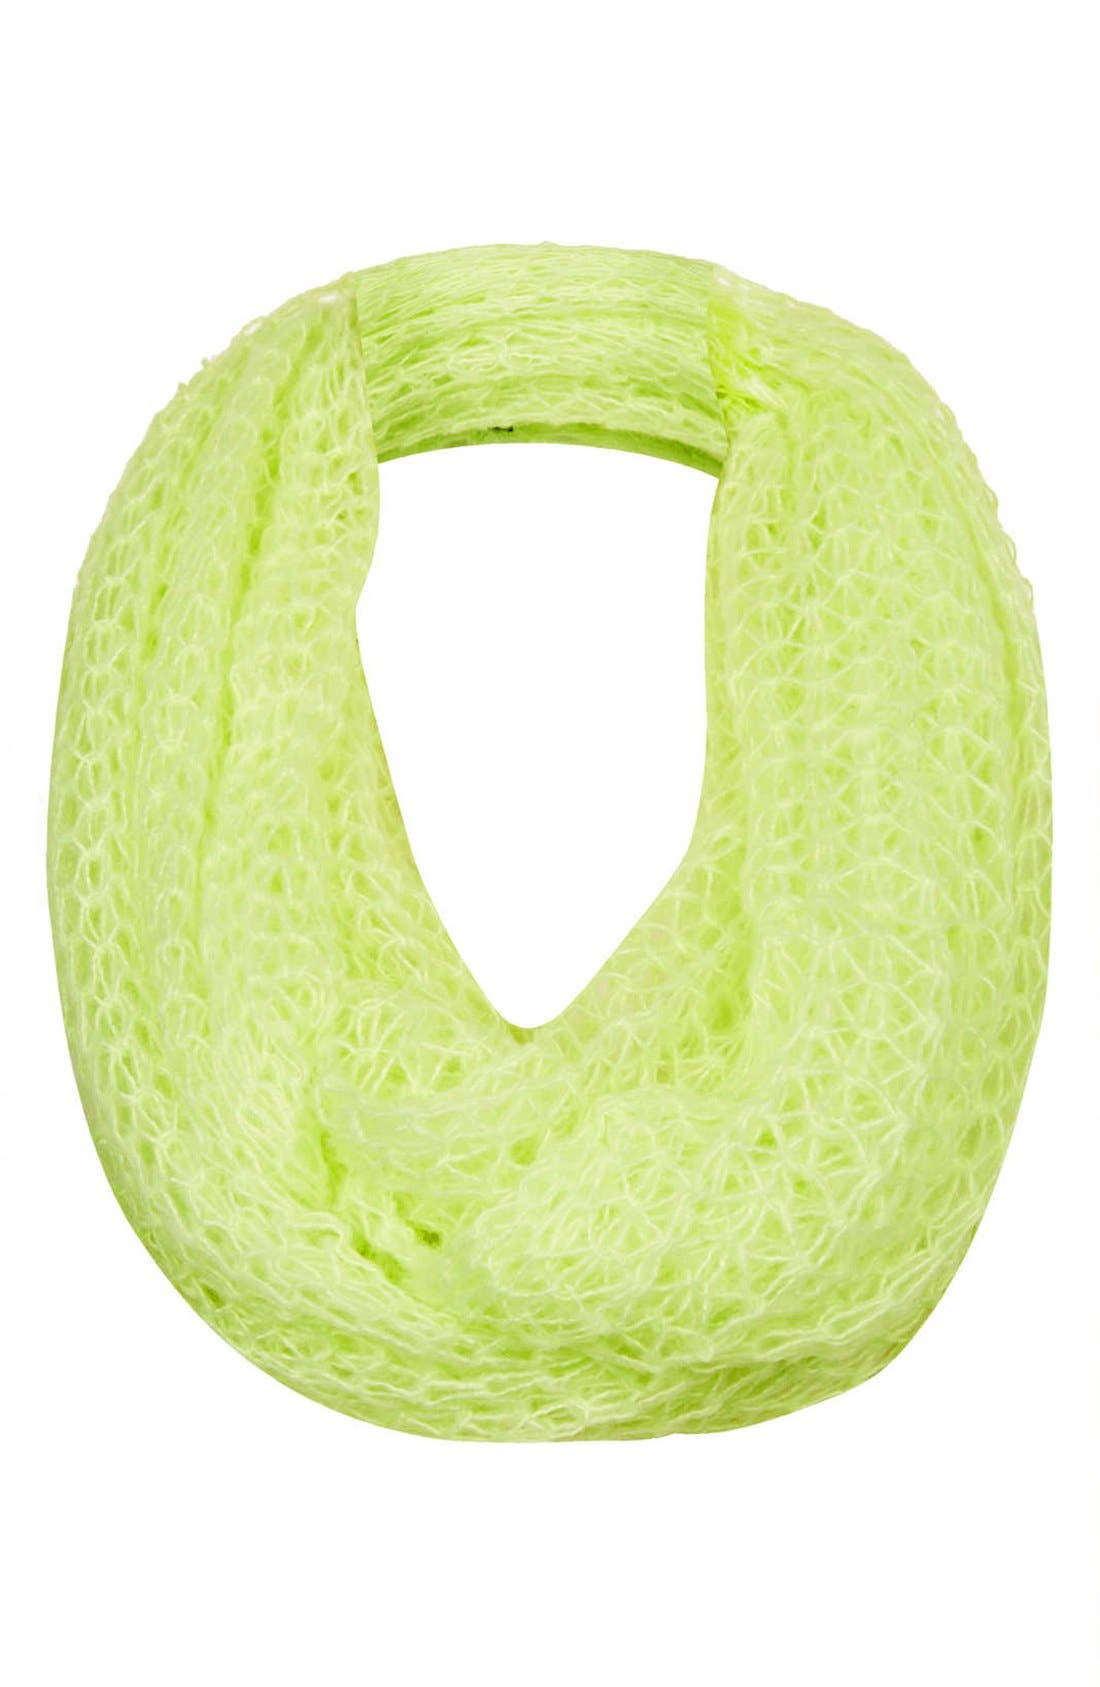 Alternate Image 1 Selected - Topshop Open Cobweb Infinity Scarf